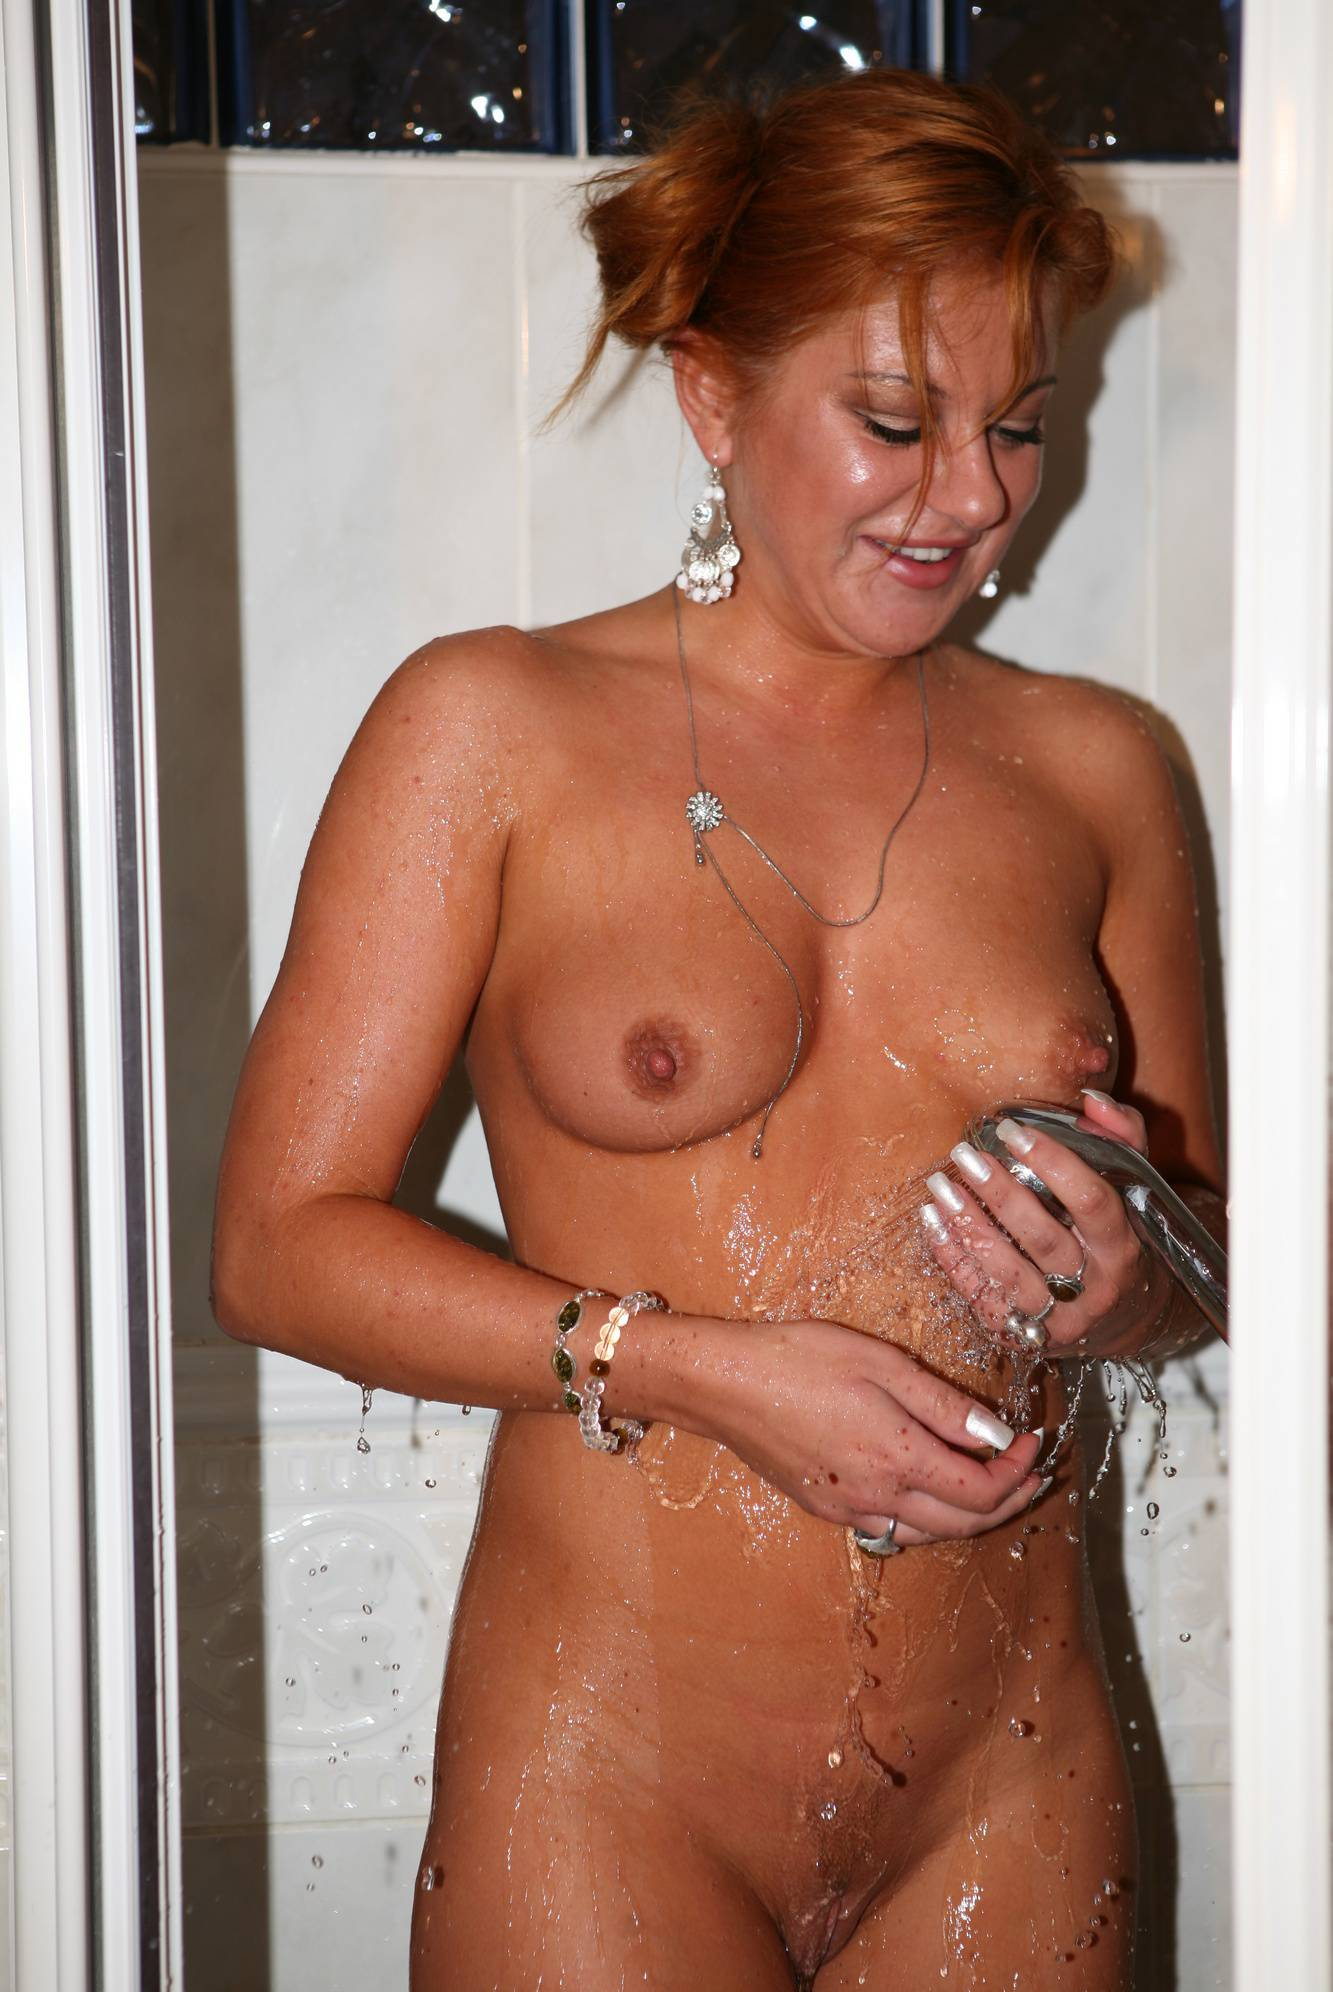 Nudist Pictures Body-Painted Girl Shower - 1